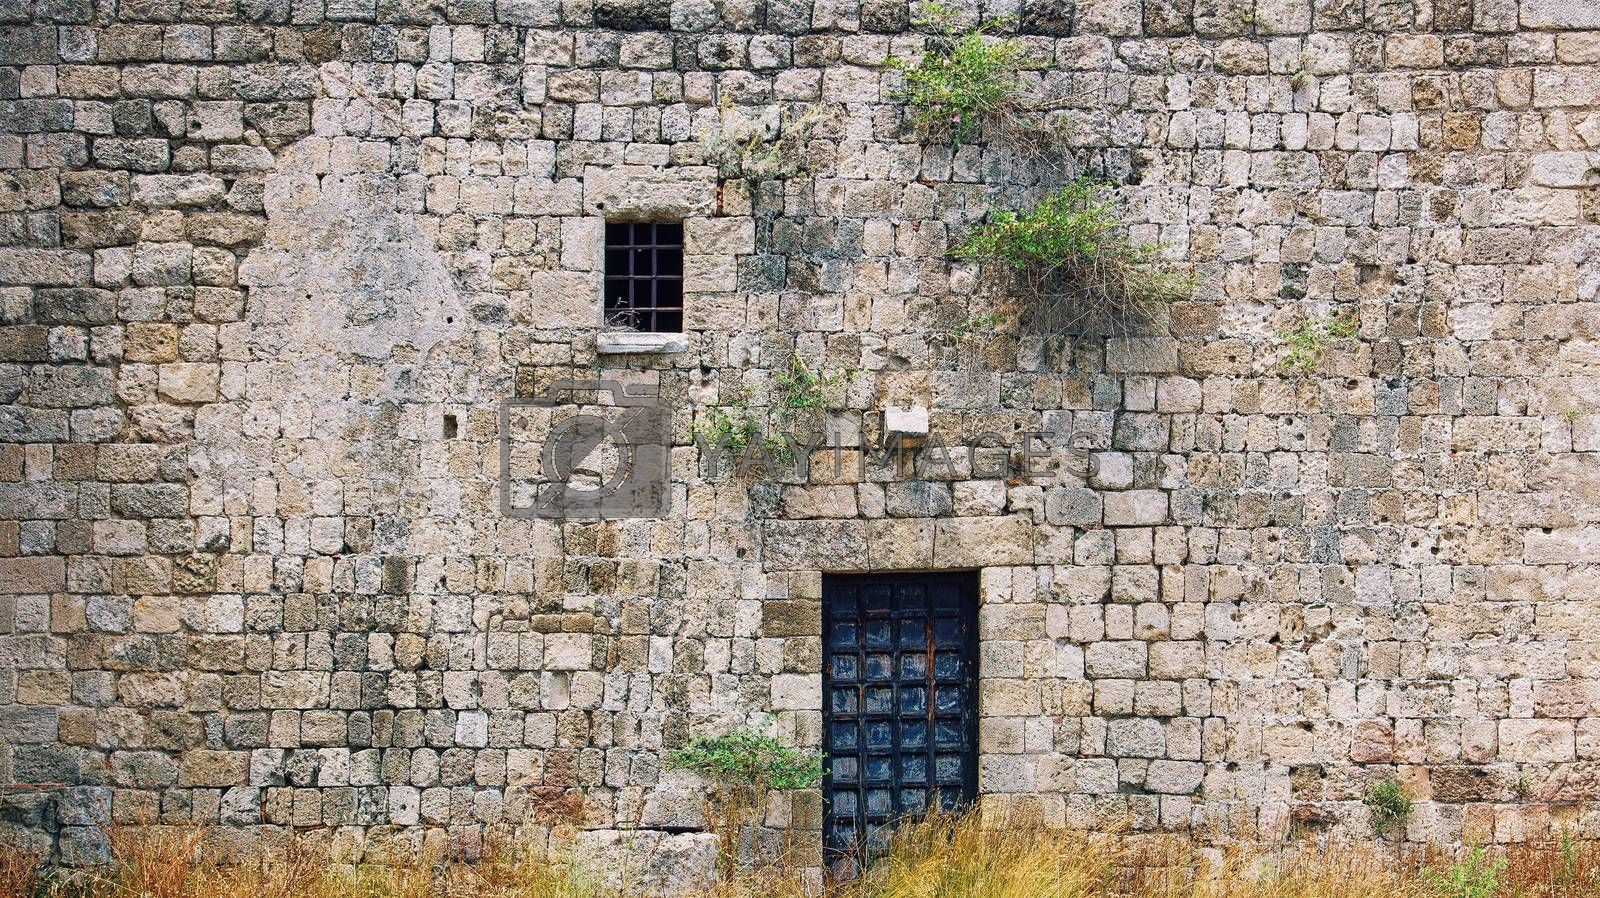 antique wall with the window and the door